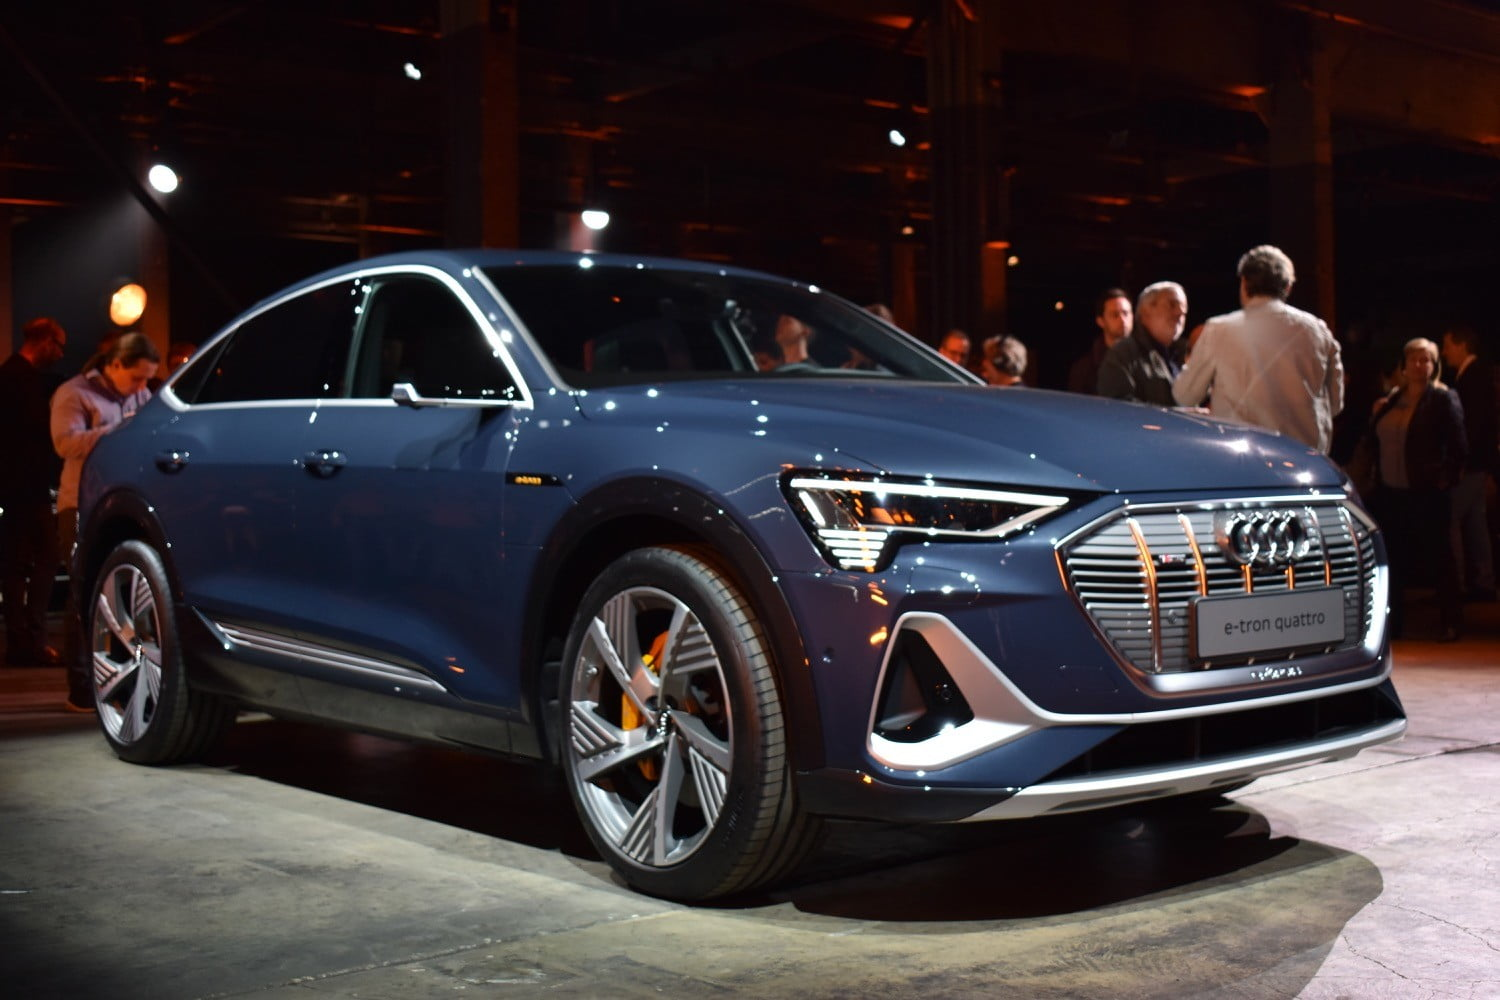 2020 Audi E-Tron Sportback is all about style, but still has substance